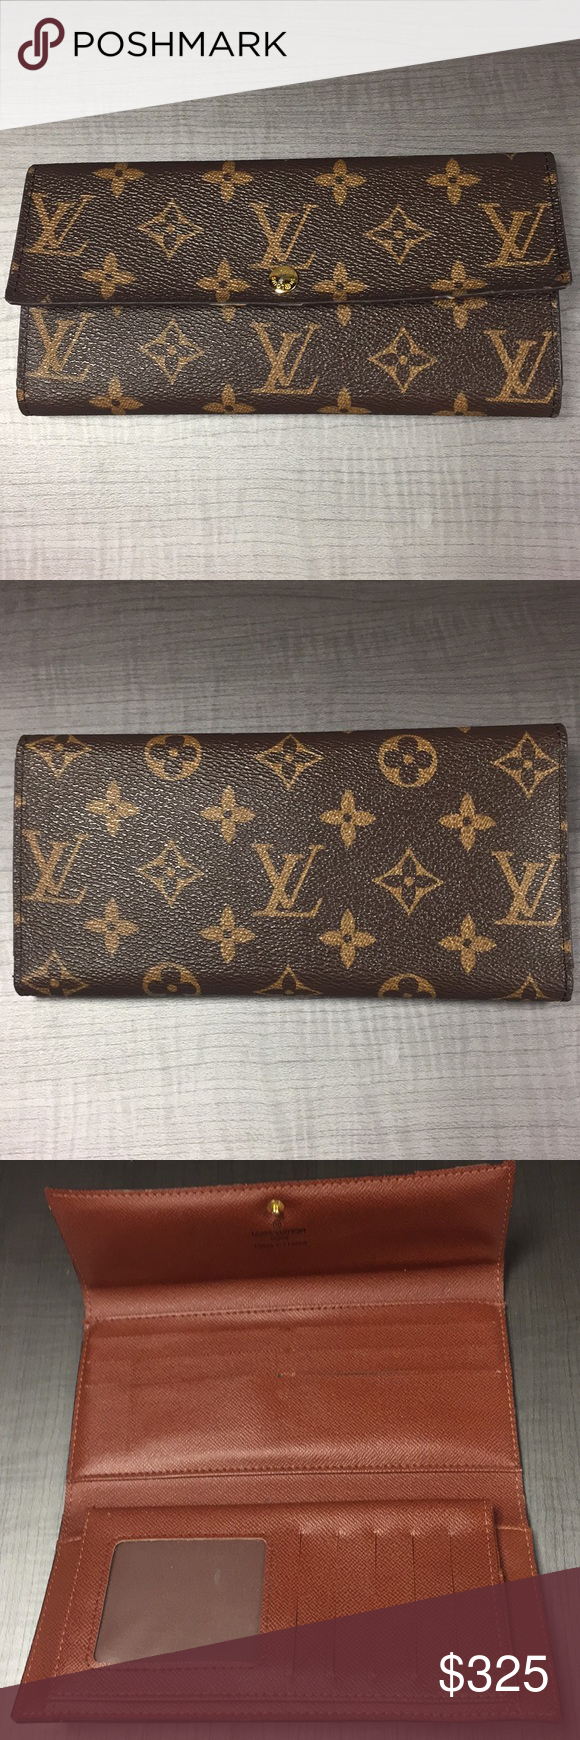 43897ae52334 Louis Vuitton Wallet EUC Authentic LV wallet. Gently used with one flaw in card  holder